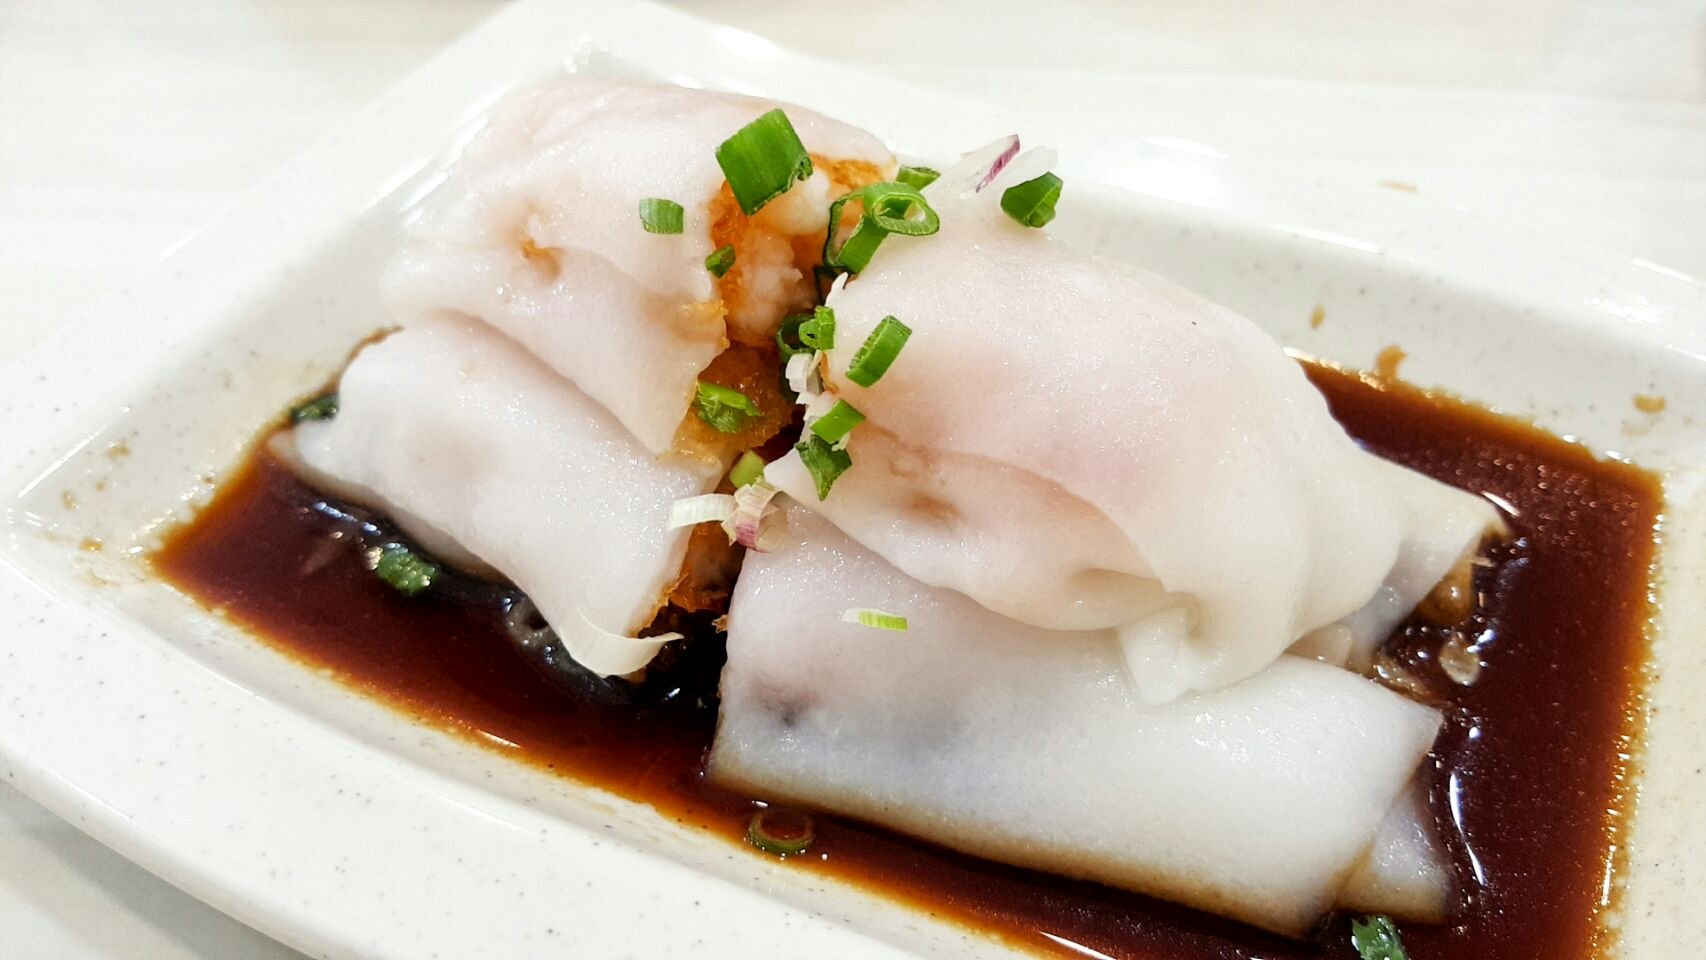 Steamed Rice Roll With Crispy Prawn ($4.20)